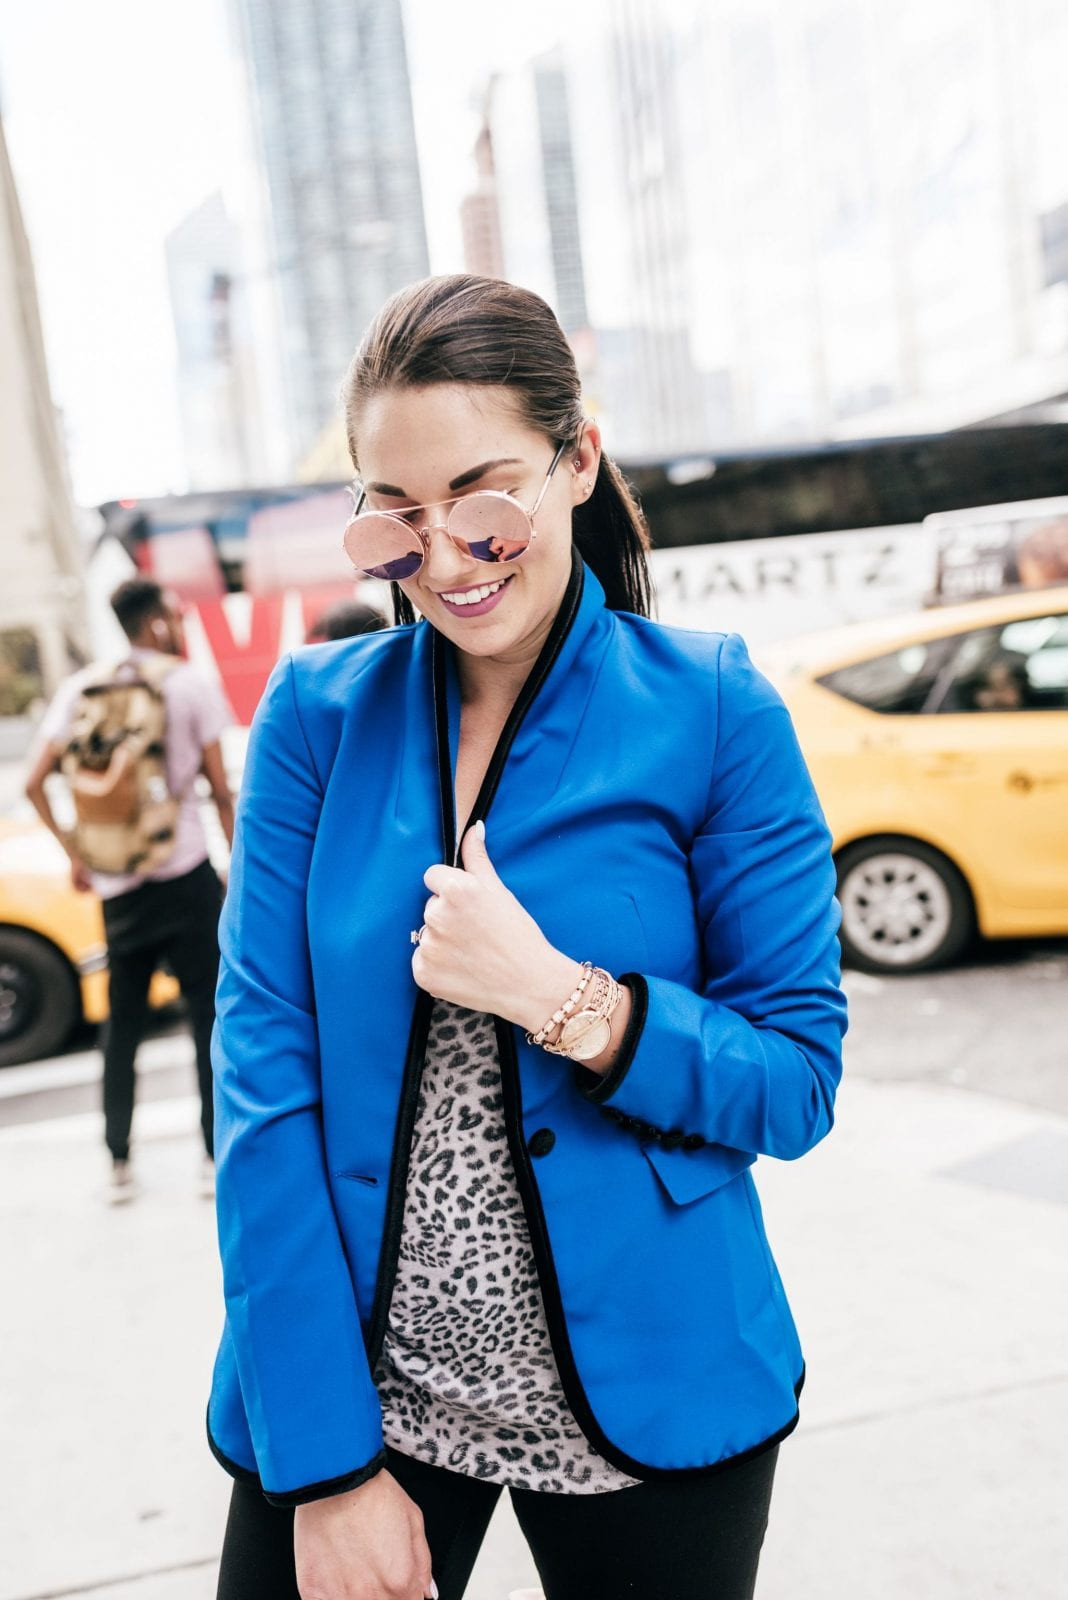 This is a photo of me in a Heidi Klum Esmara Blue Jacket, and black jeans in New York City.